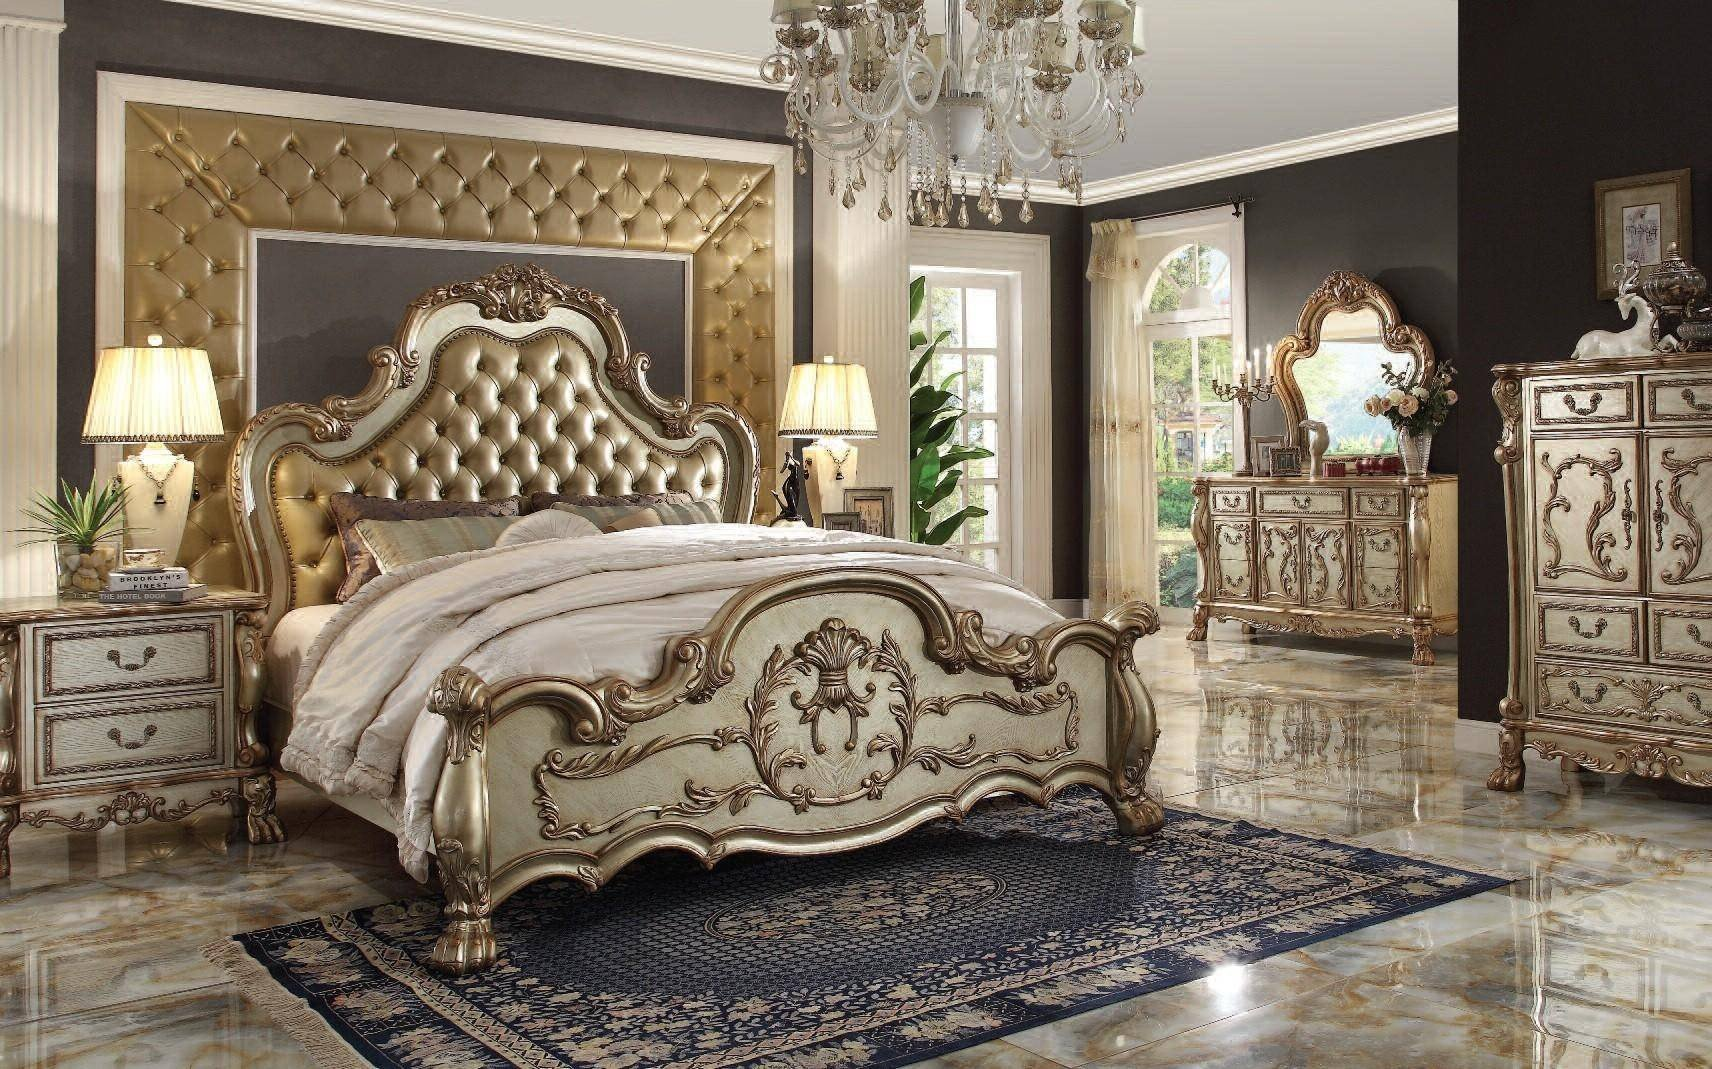 Off White Bedroom Furniture Inspirational Tufted Gold Patina King Bed Dresden Ek Acme Victorian Classic